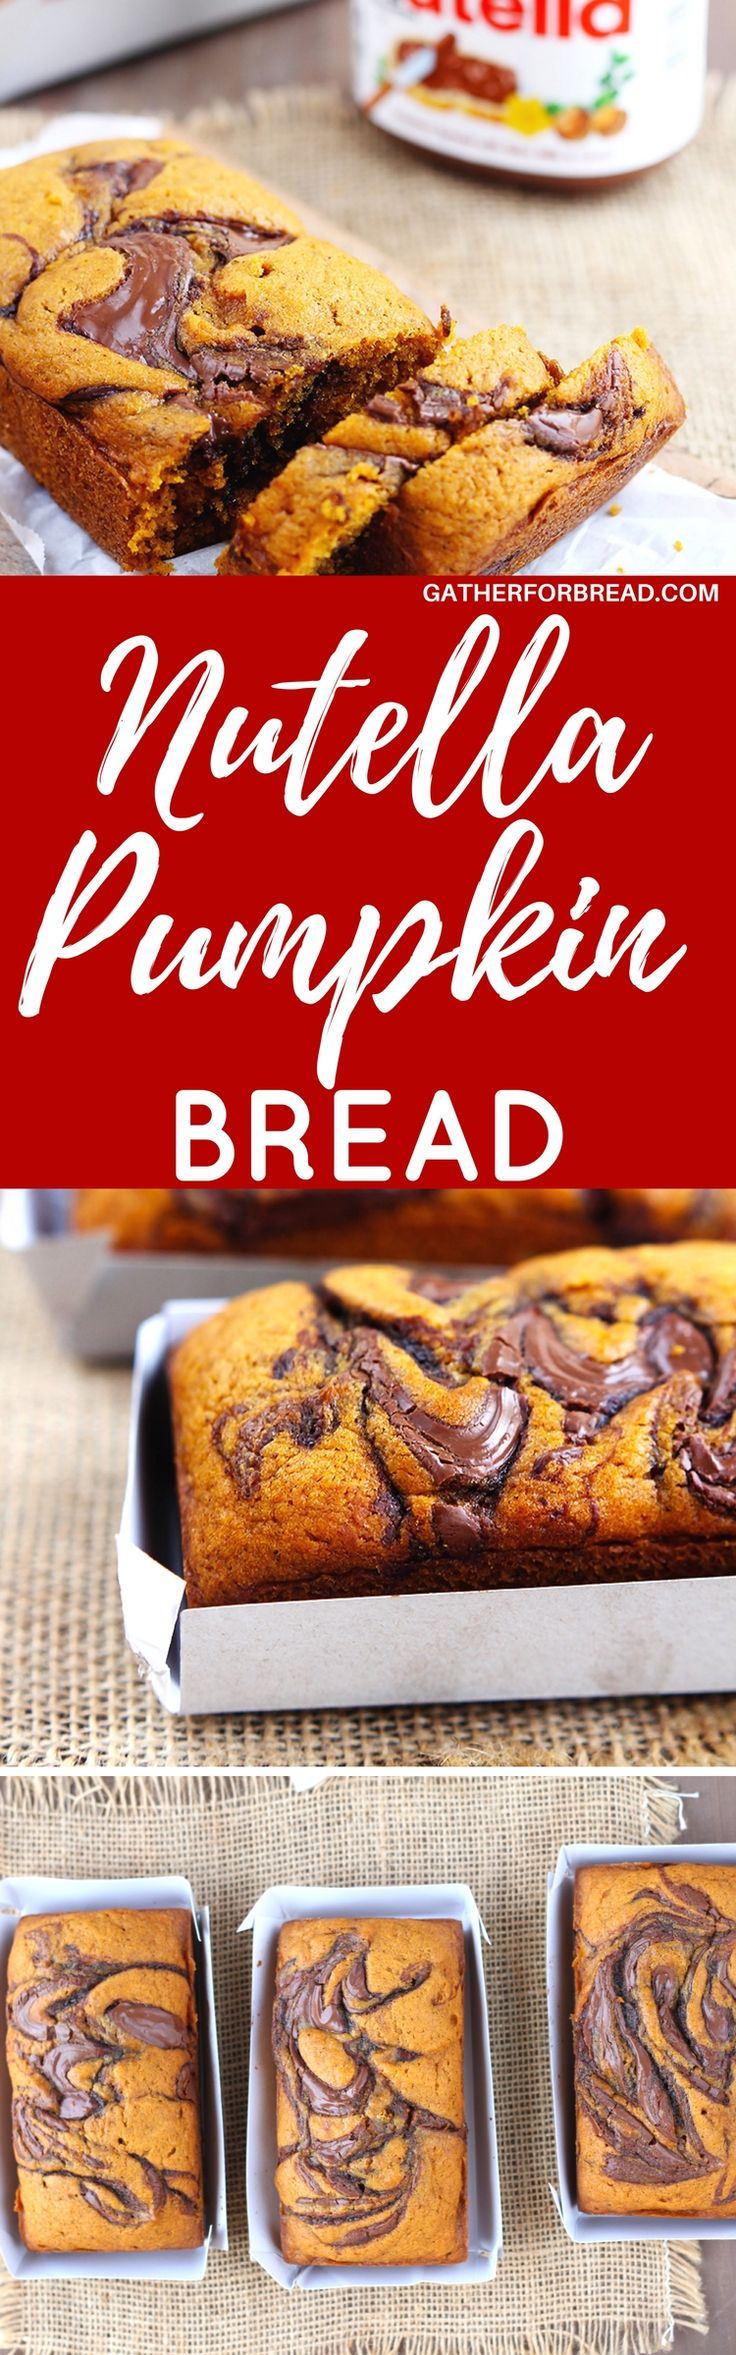 Nutella Swirled Pumpkin Bread - Fall pumpkin loaves swirled with a good dose of Nutella